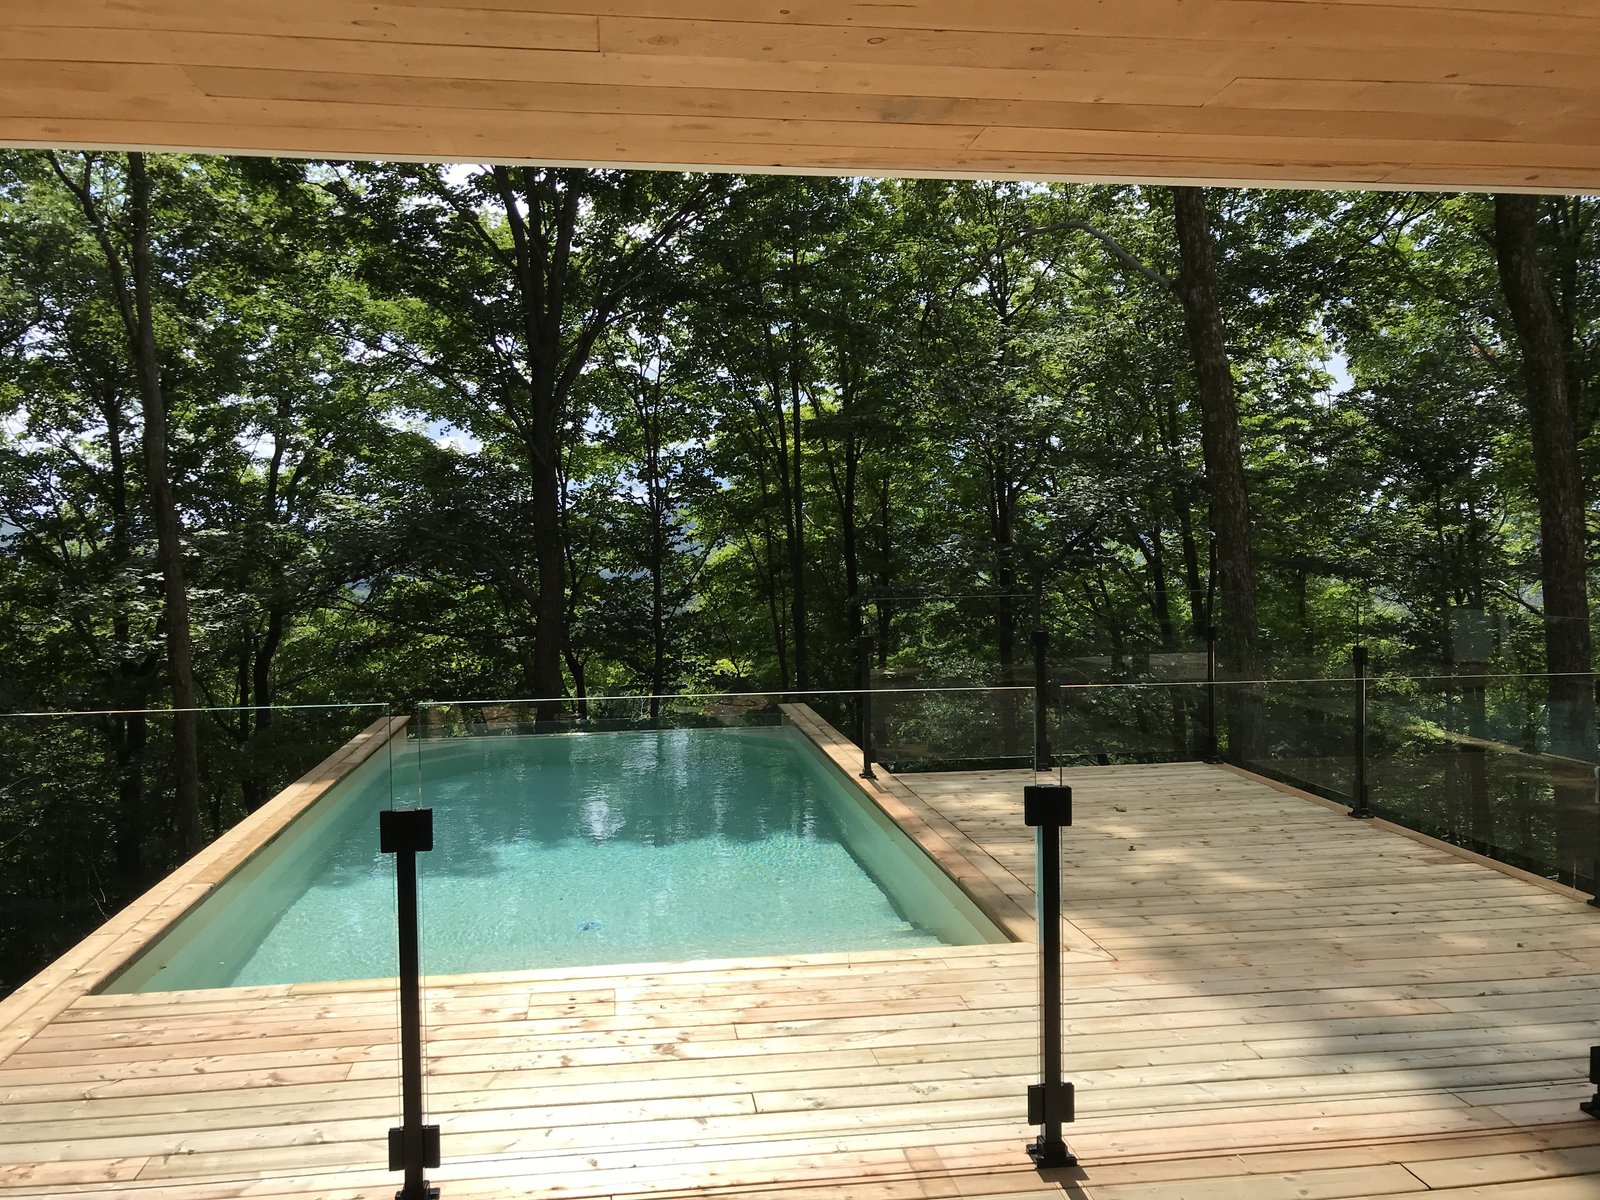 Outdoor, Landscape Lighting, Back Yard, Salt Water Pools, Tubs, Shower, Vegetables, Concrete Pools, Tubs, Shower, Wood Patio, Porch, Deck, and Infinity Pools, Tubs, Shower  the Enright house